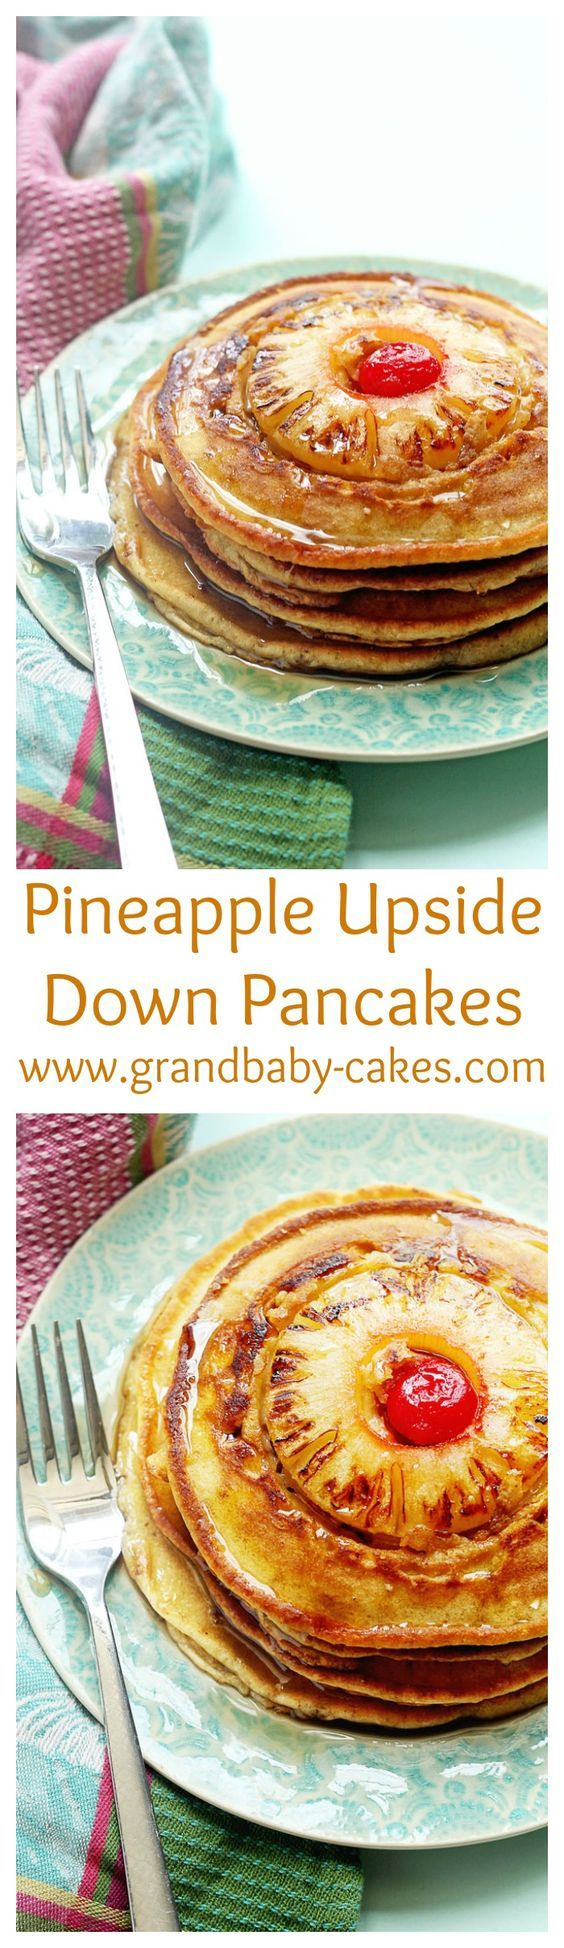 Delicious Pineapple Upside Down Pancakes! Enjoy the classic cake for BREAKFAST…